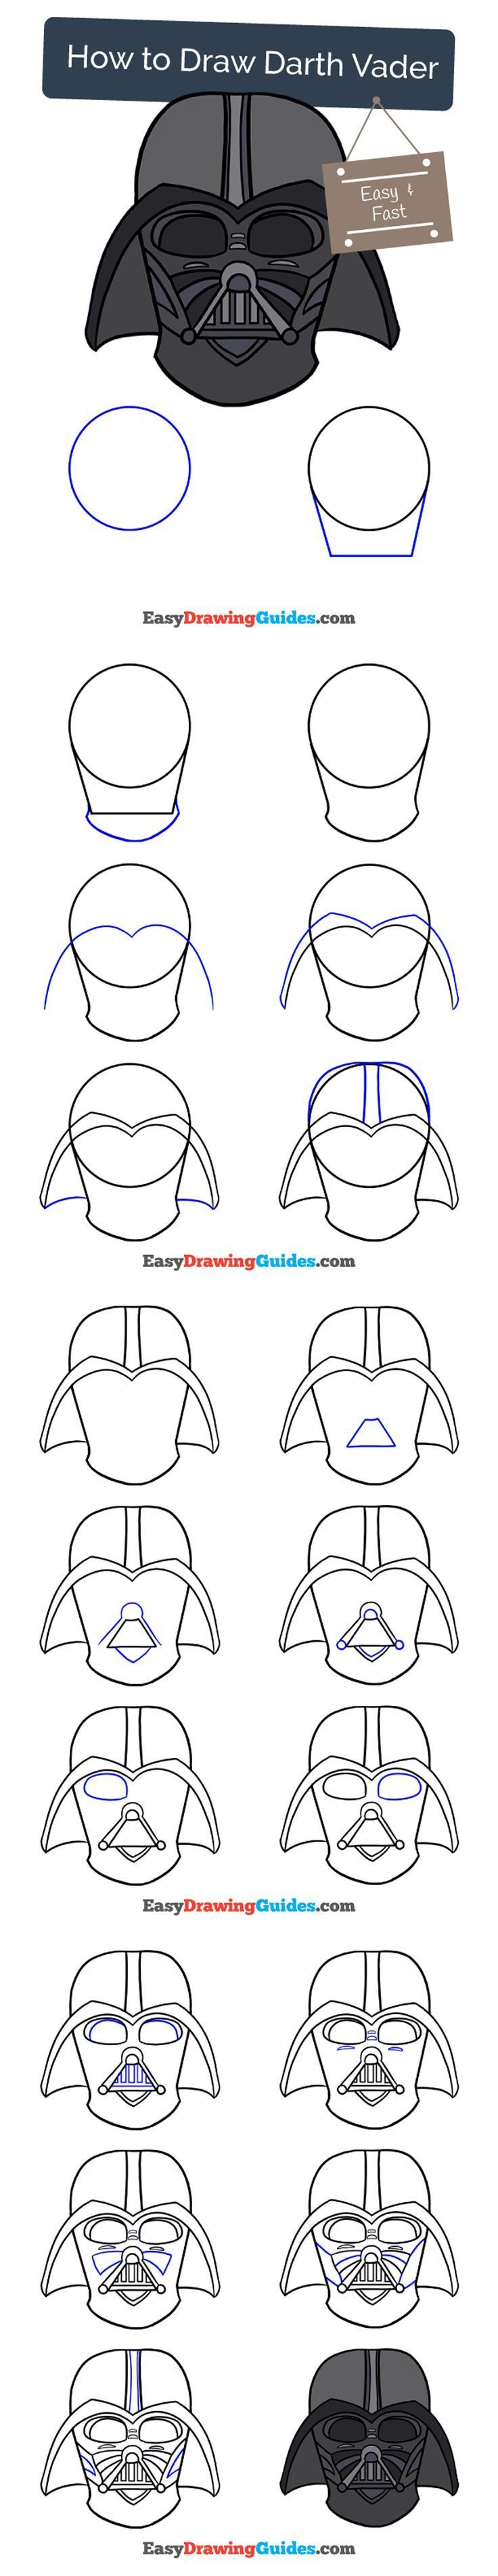 How To Draw Darth Vader In A Few Easy Steps Ideas How To Draw